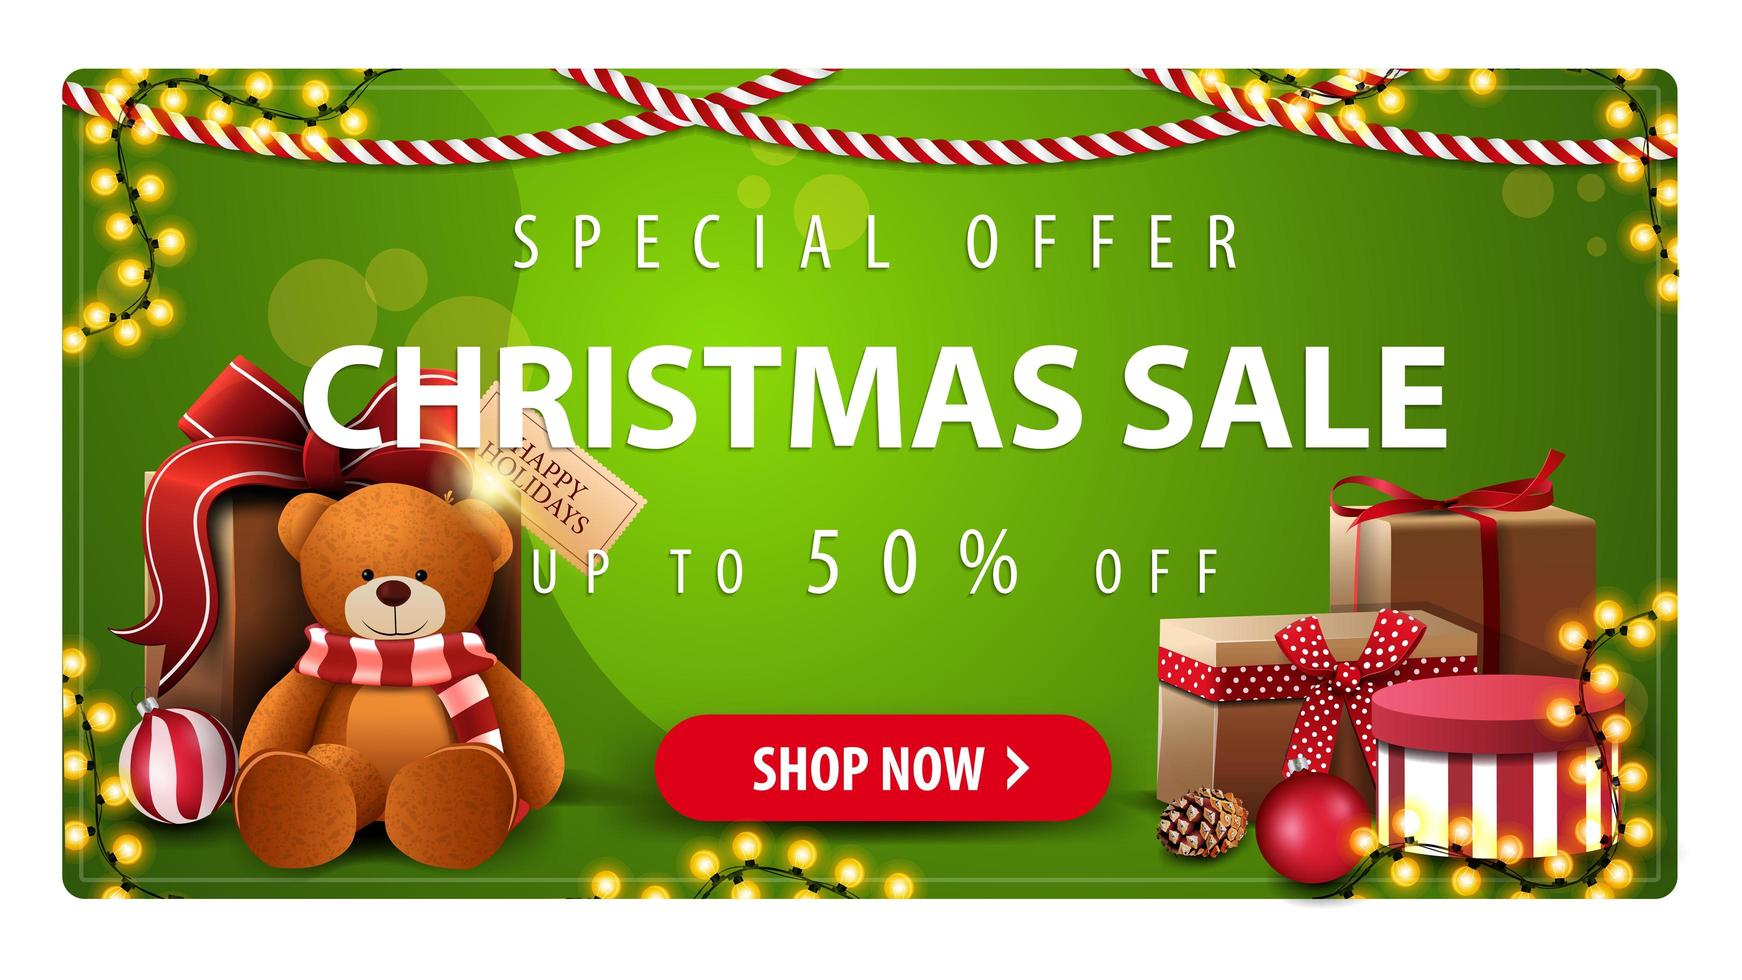 Special offer, Christmas sale, up to 50 off, horizontal green banner with button, garlands and presents with Teddy bear vector